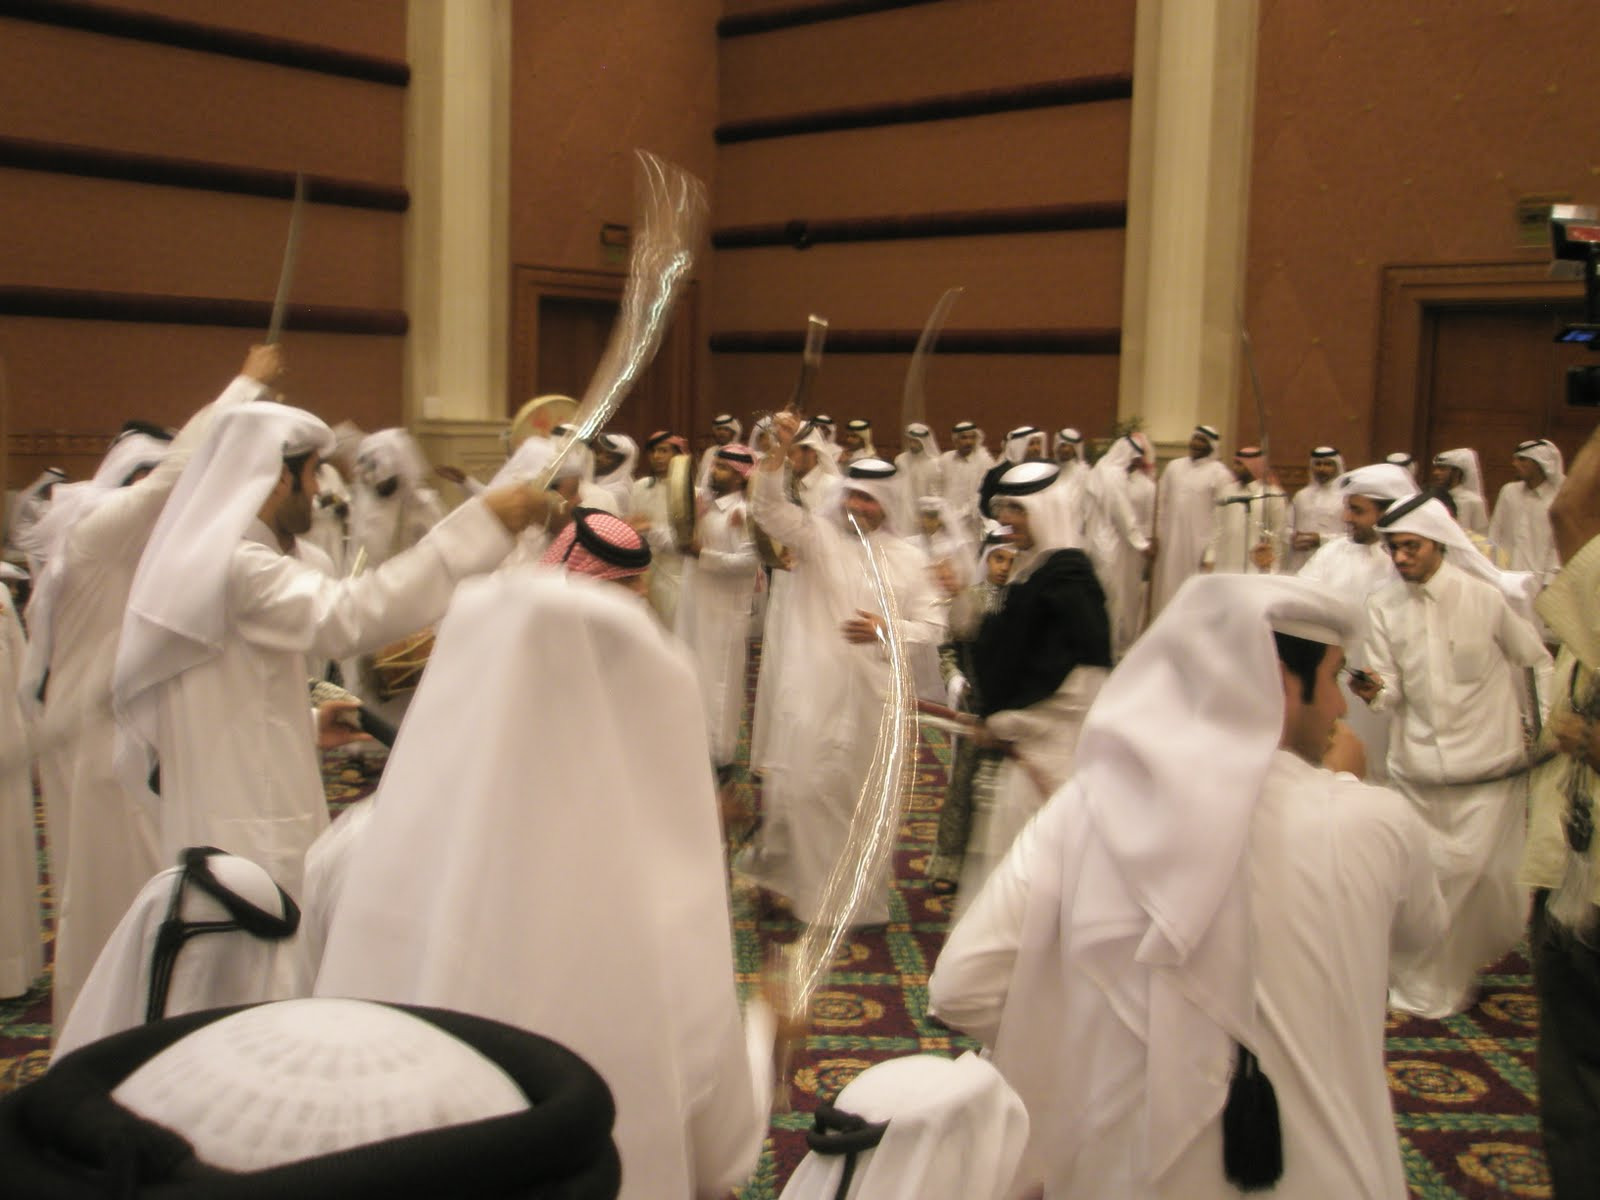 Qatari Wedding (Arab Wedding)